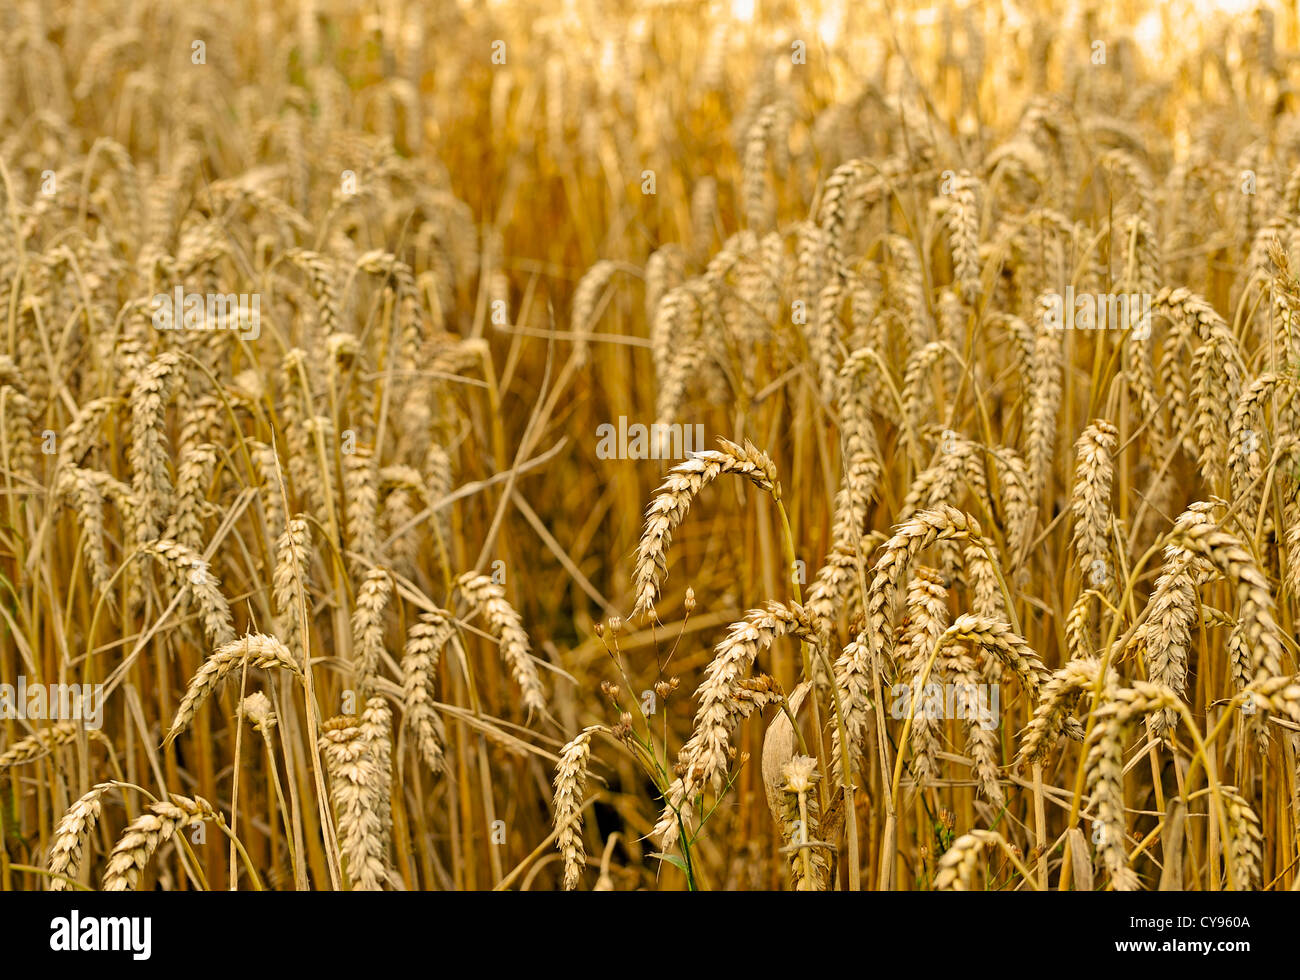 A FIELD OF WHEAT GROWING - Stock Image